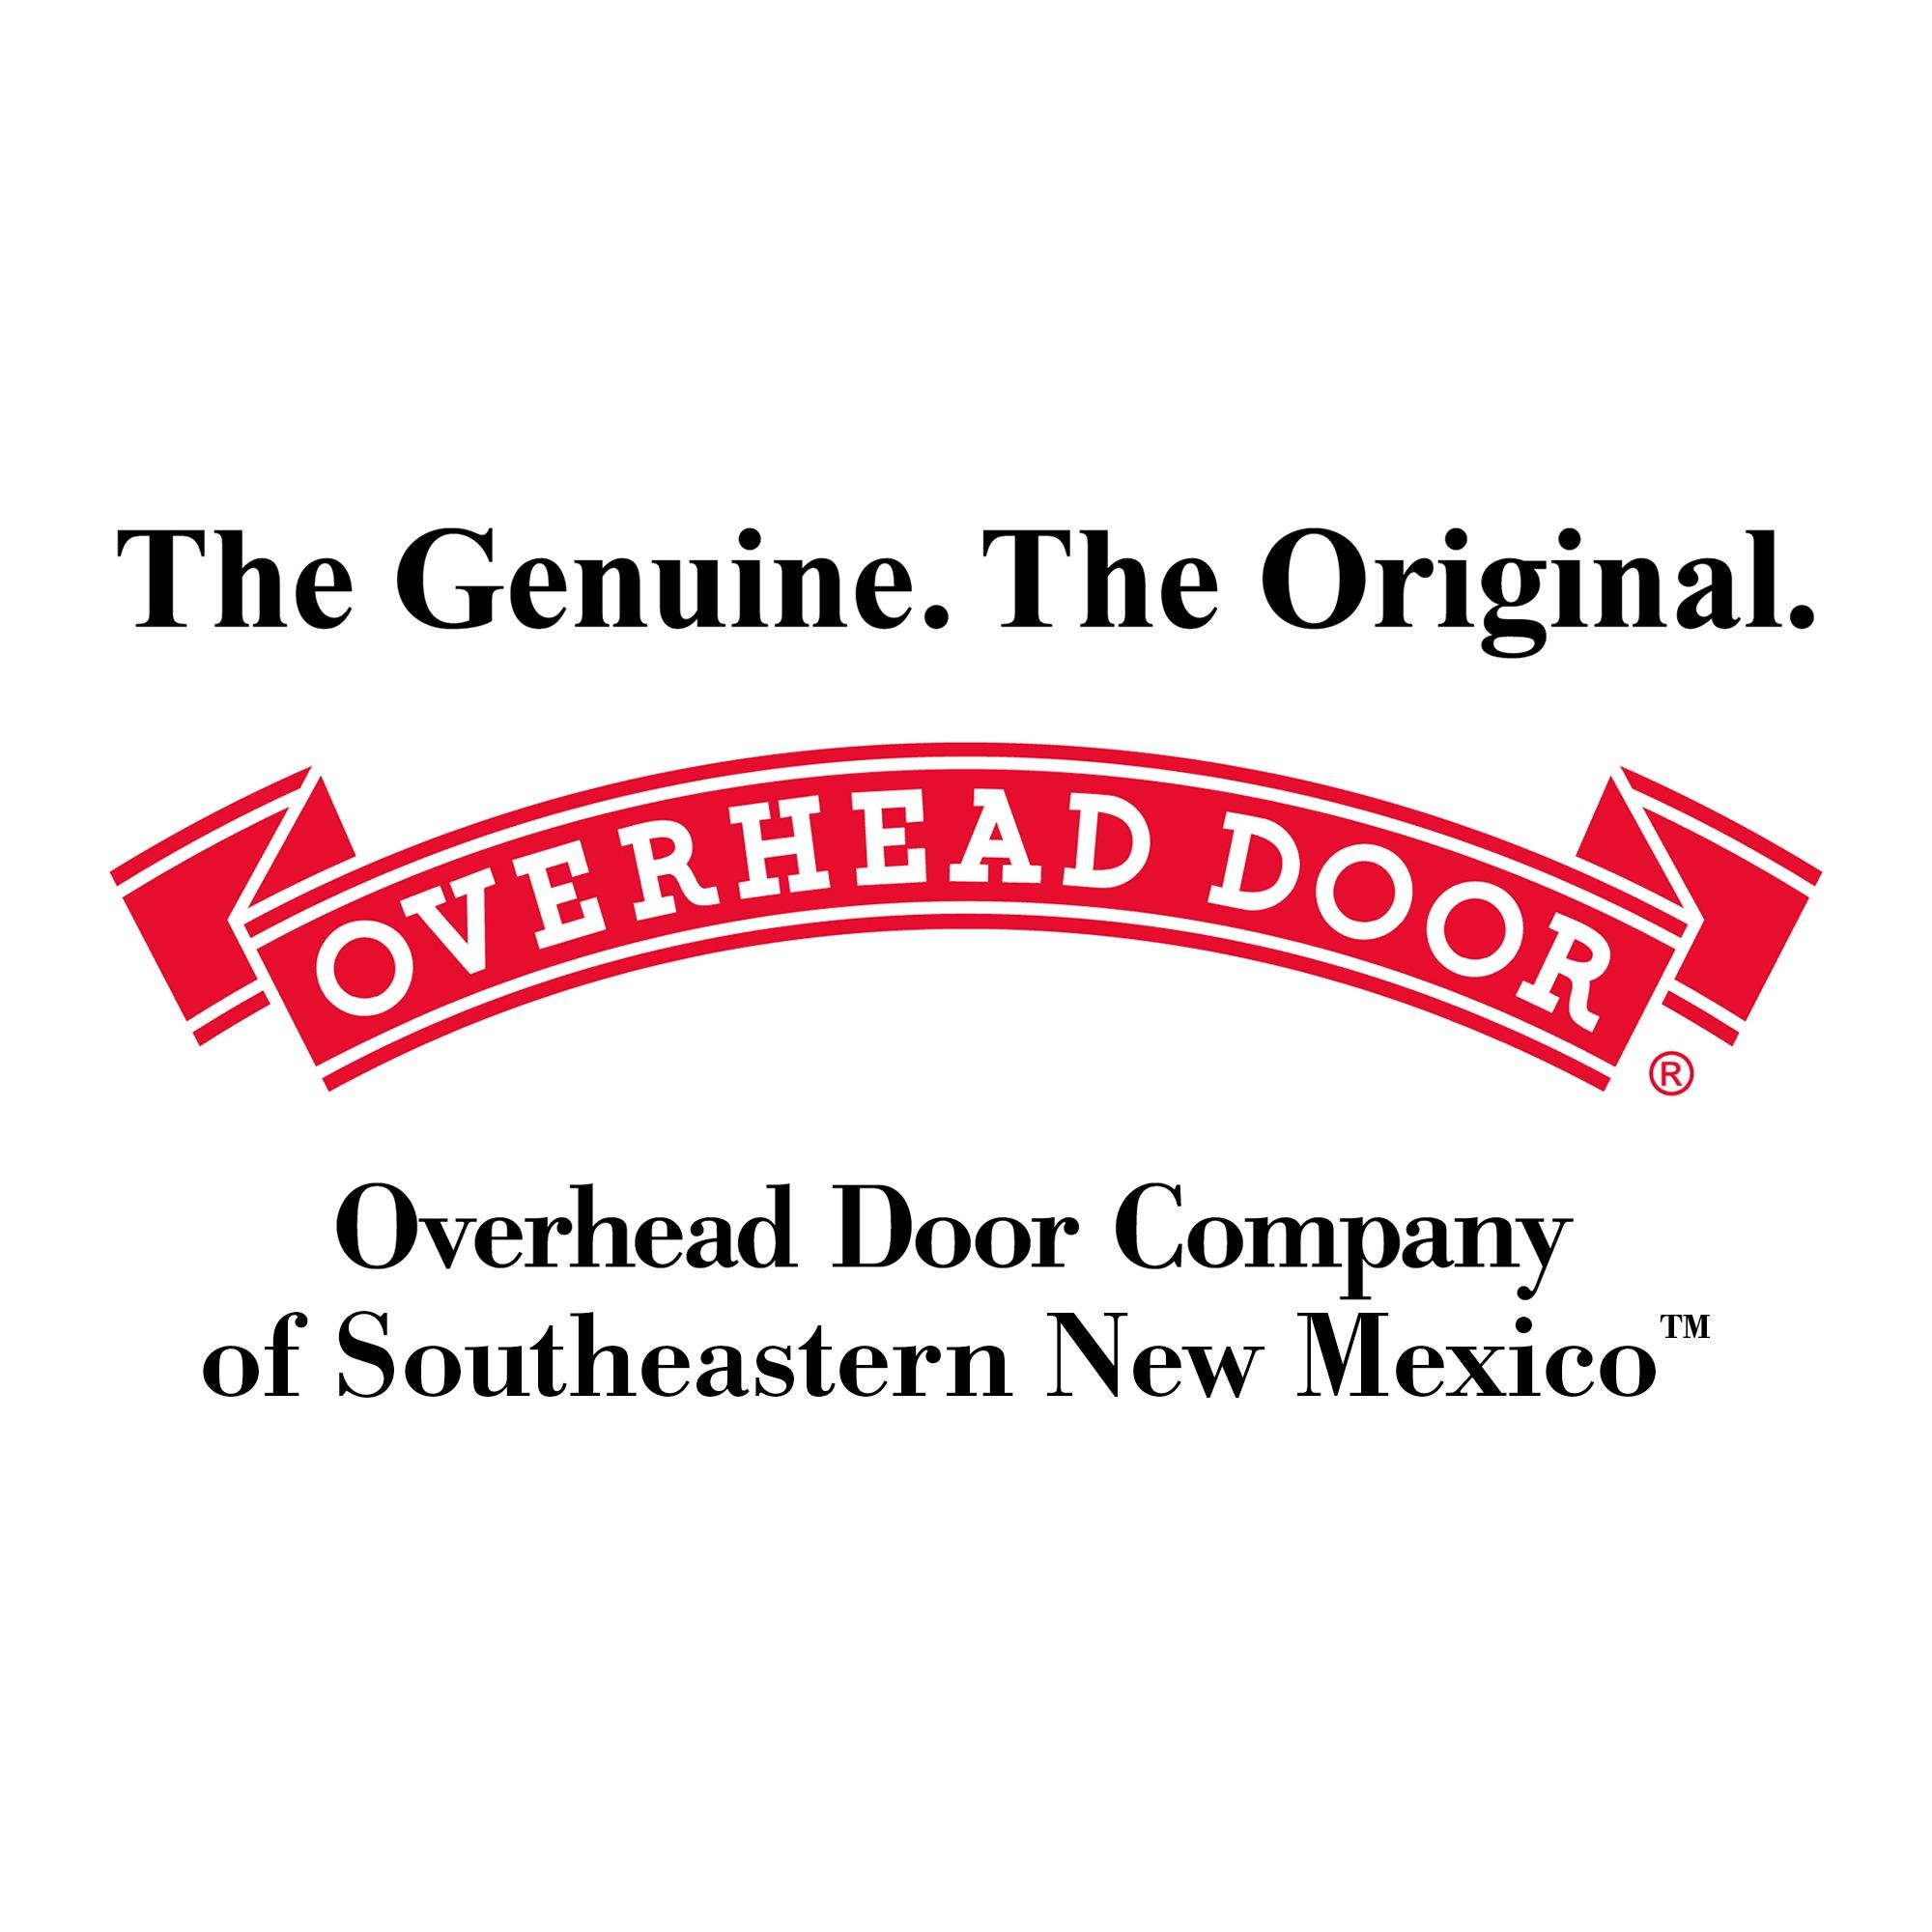 Overhead Door Company of Southeastern New Mexico